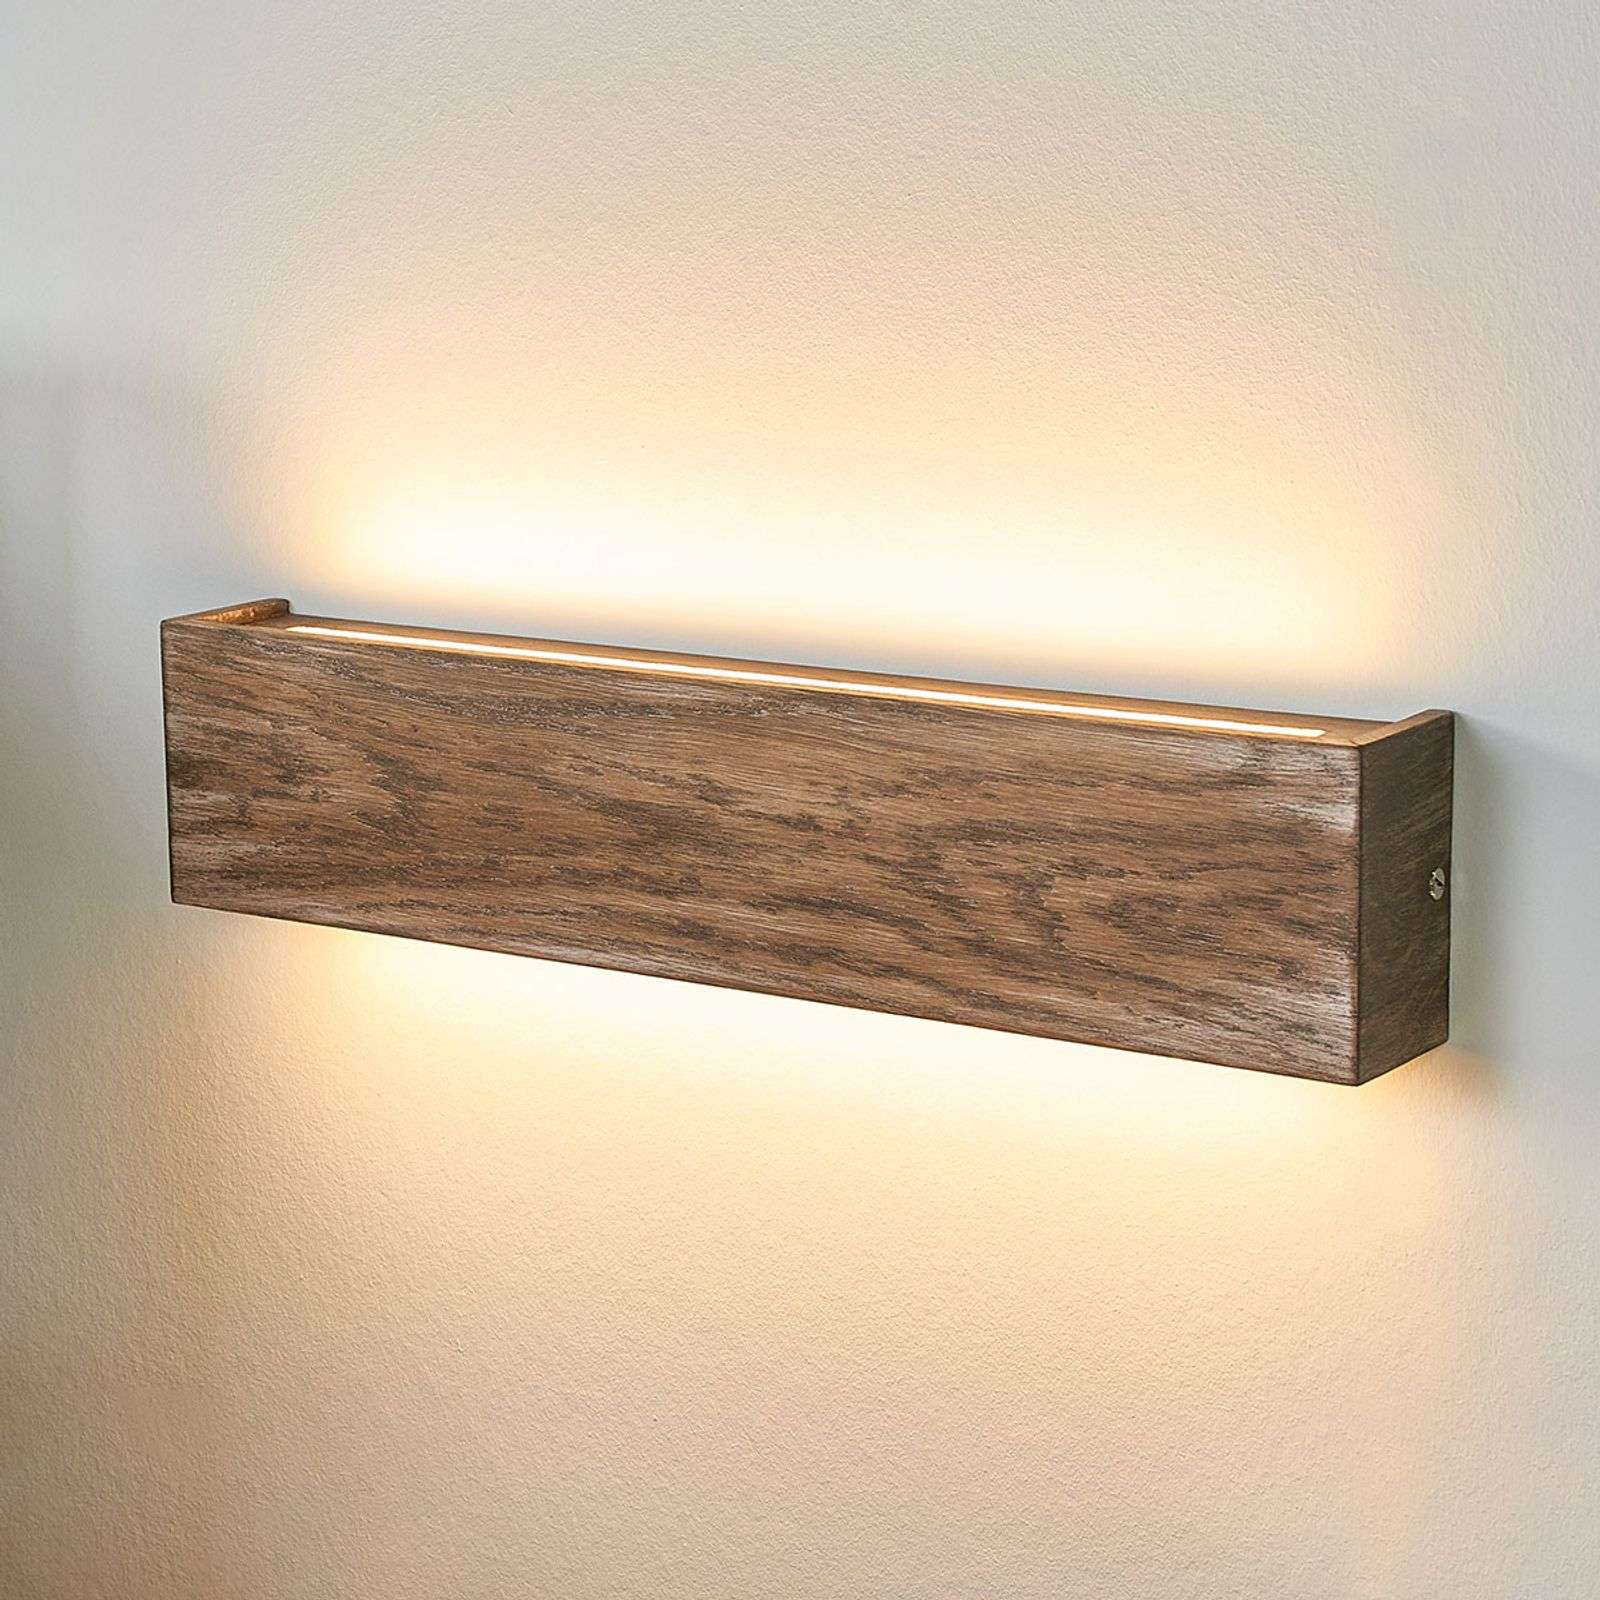 Applique LED Mila bois, dimmable, 45 cm